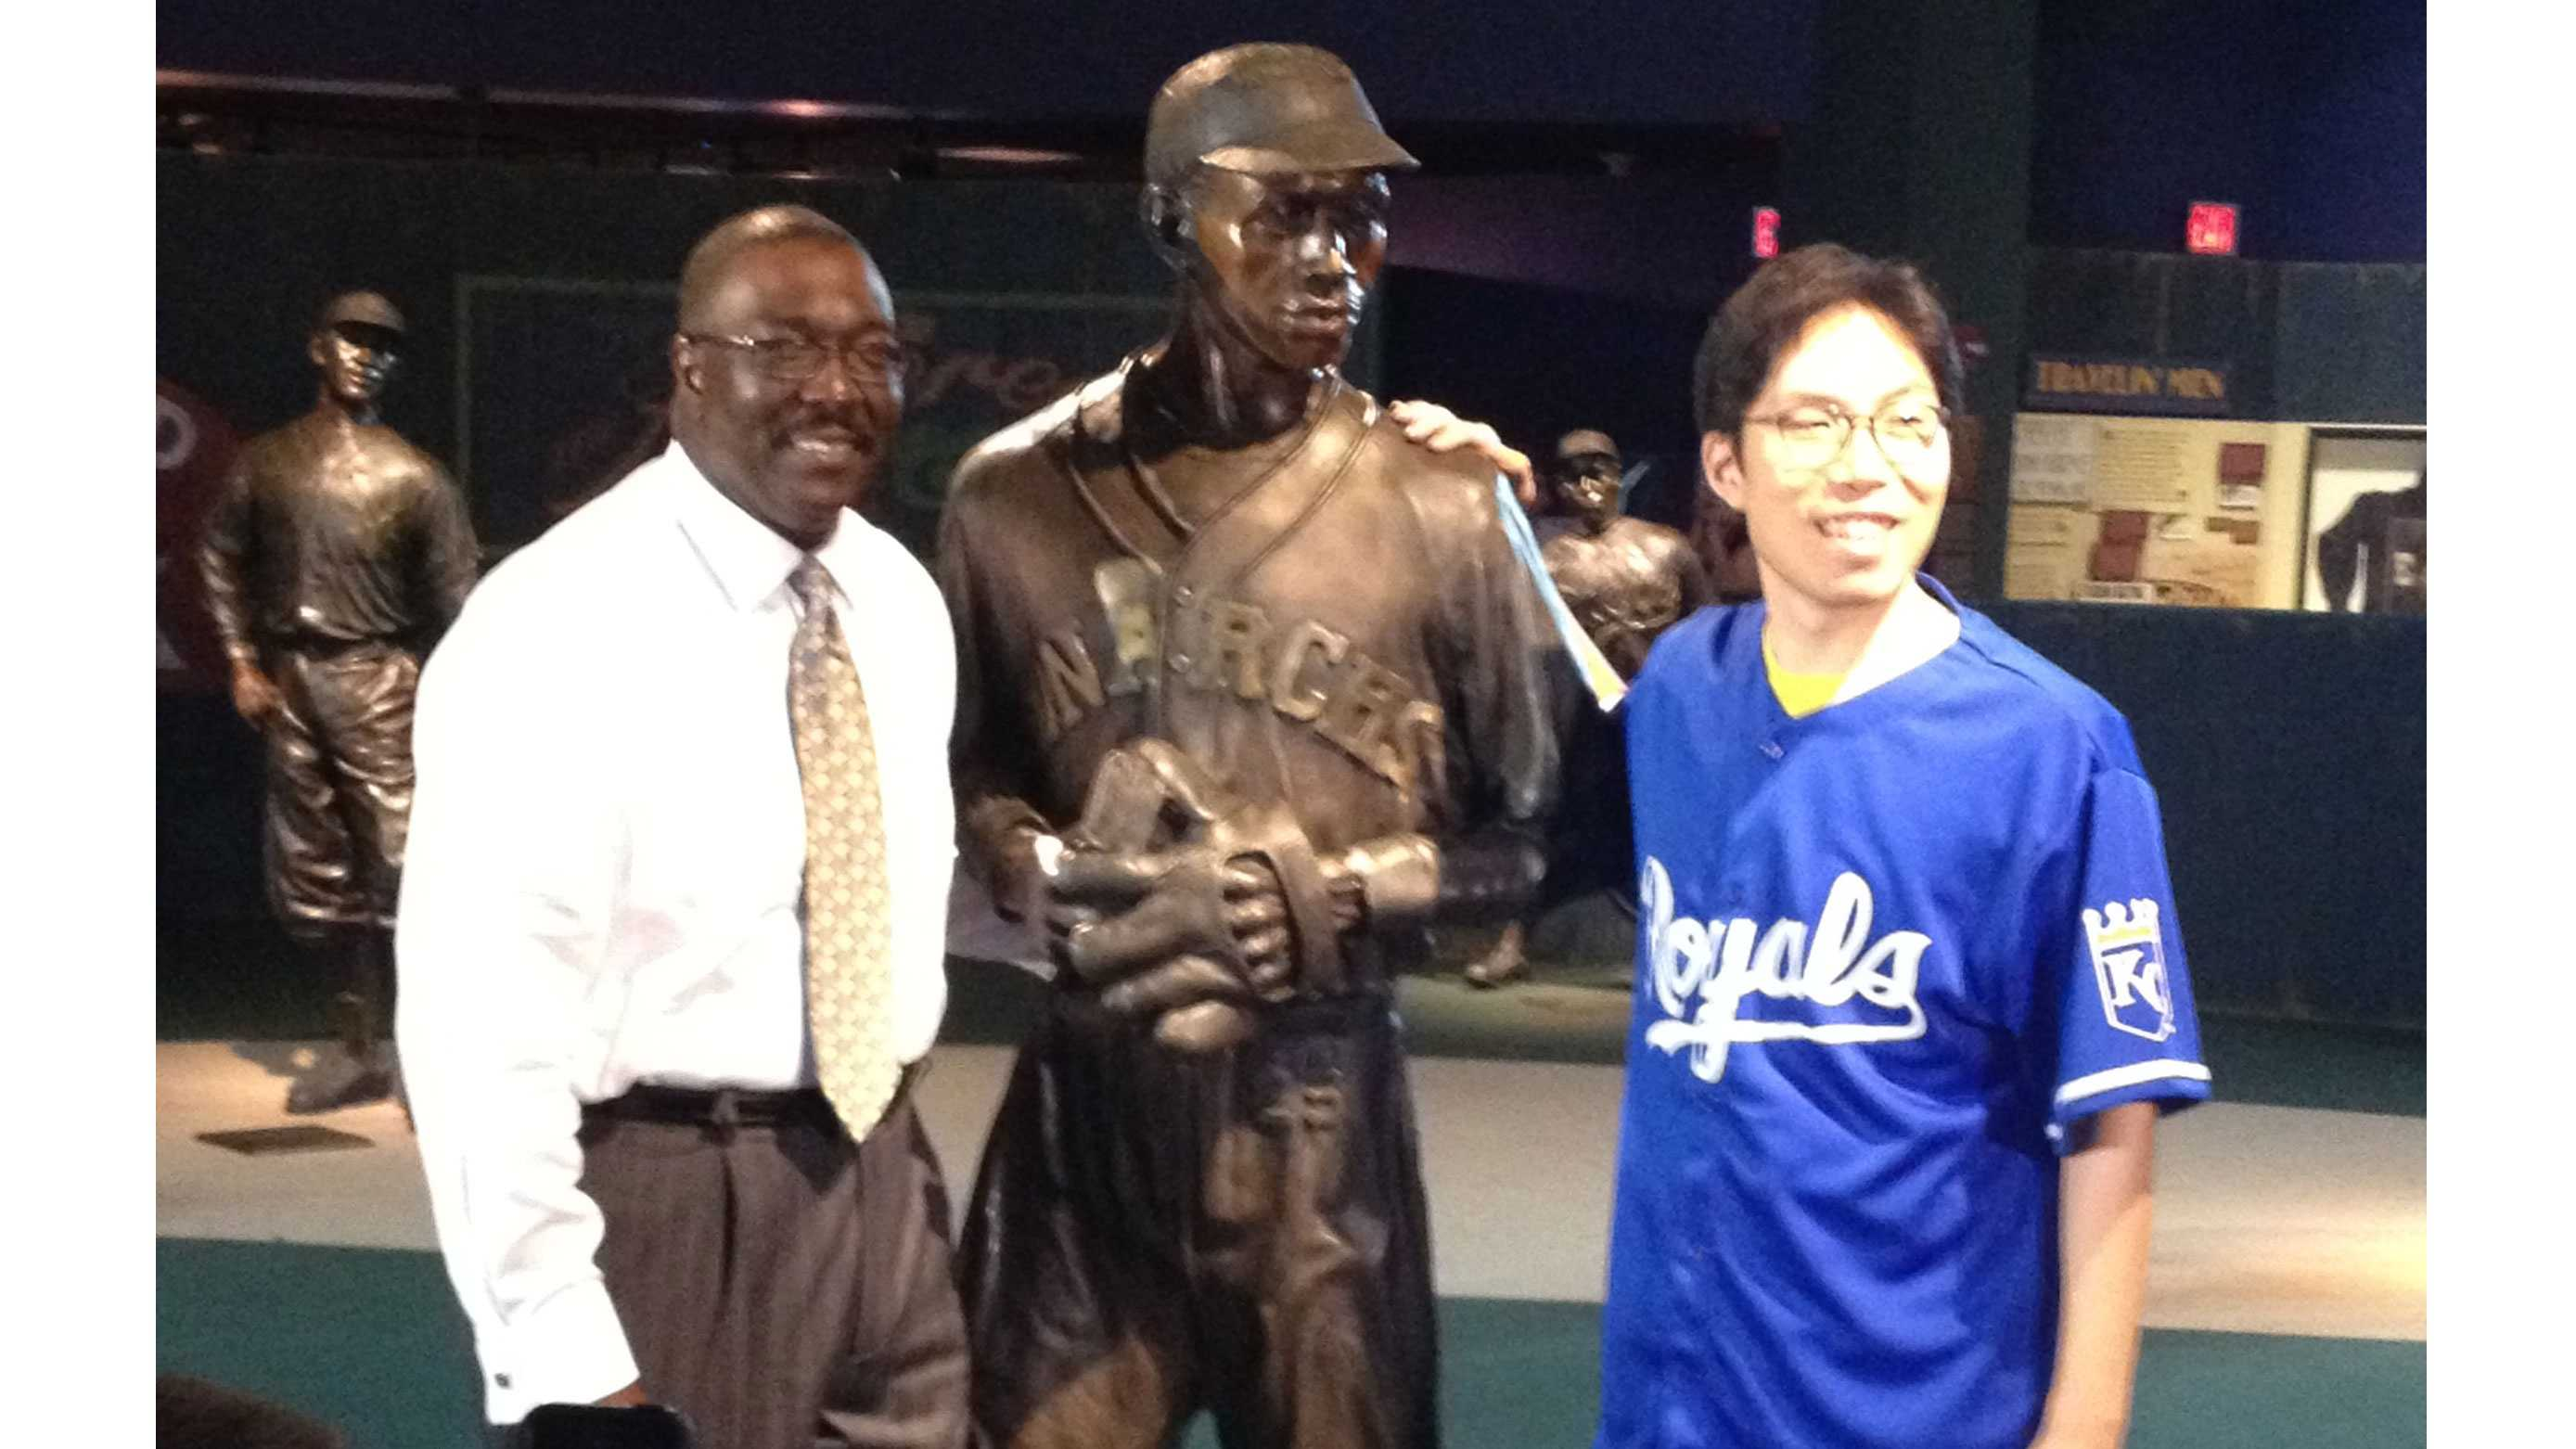 SungWoo Lee visits Kansas City's Negro Leagues Baseball Museum. He posed for a picture with NLBM President Bob Kendrick.